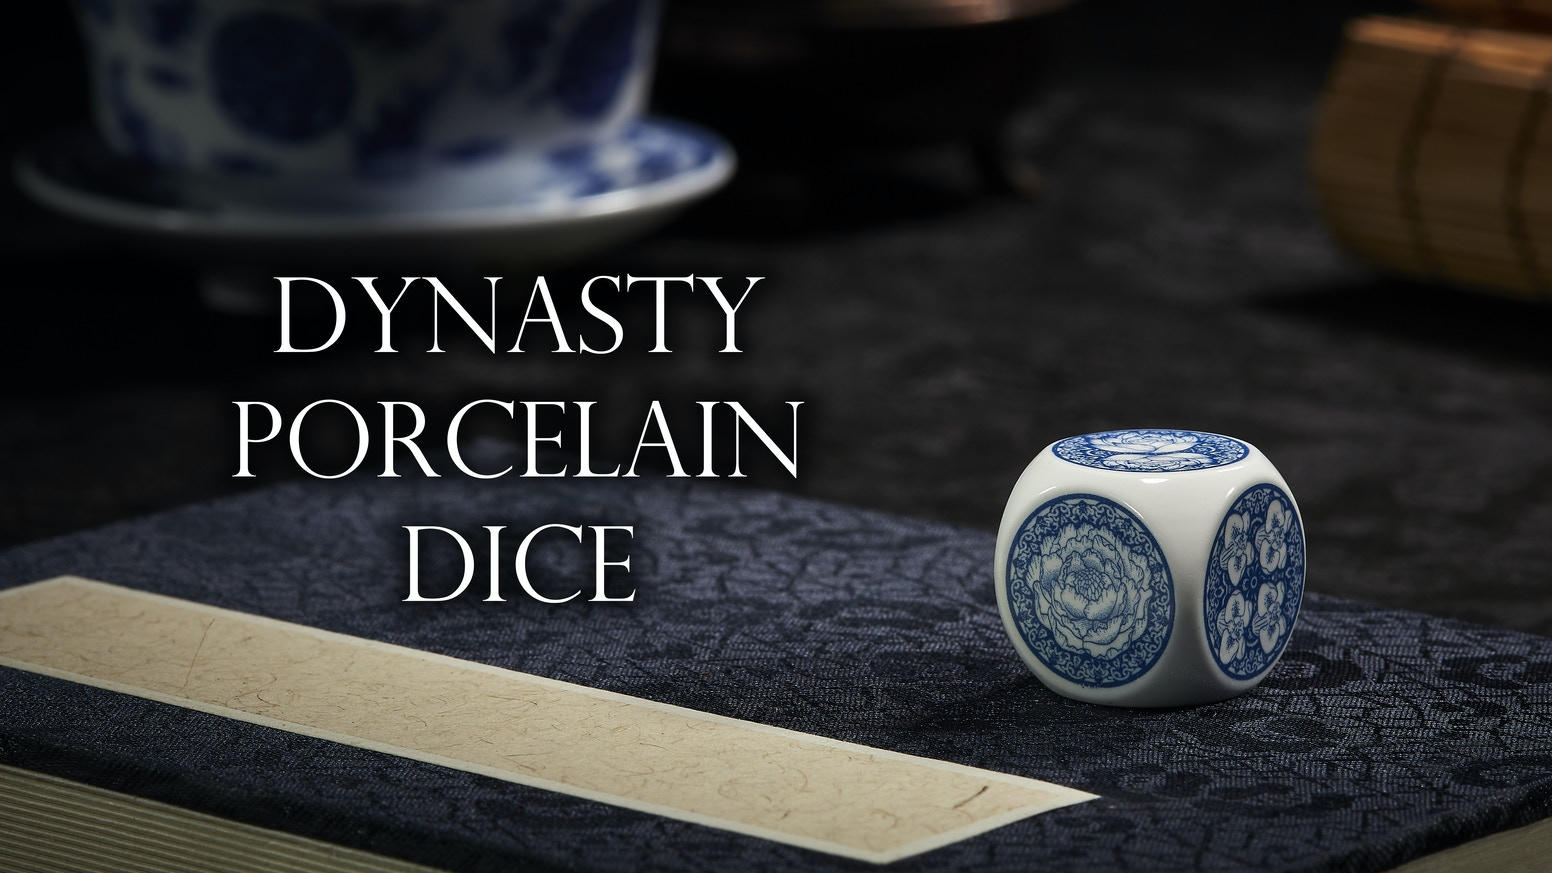 The very first, premier porcelain dice in the world.